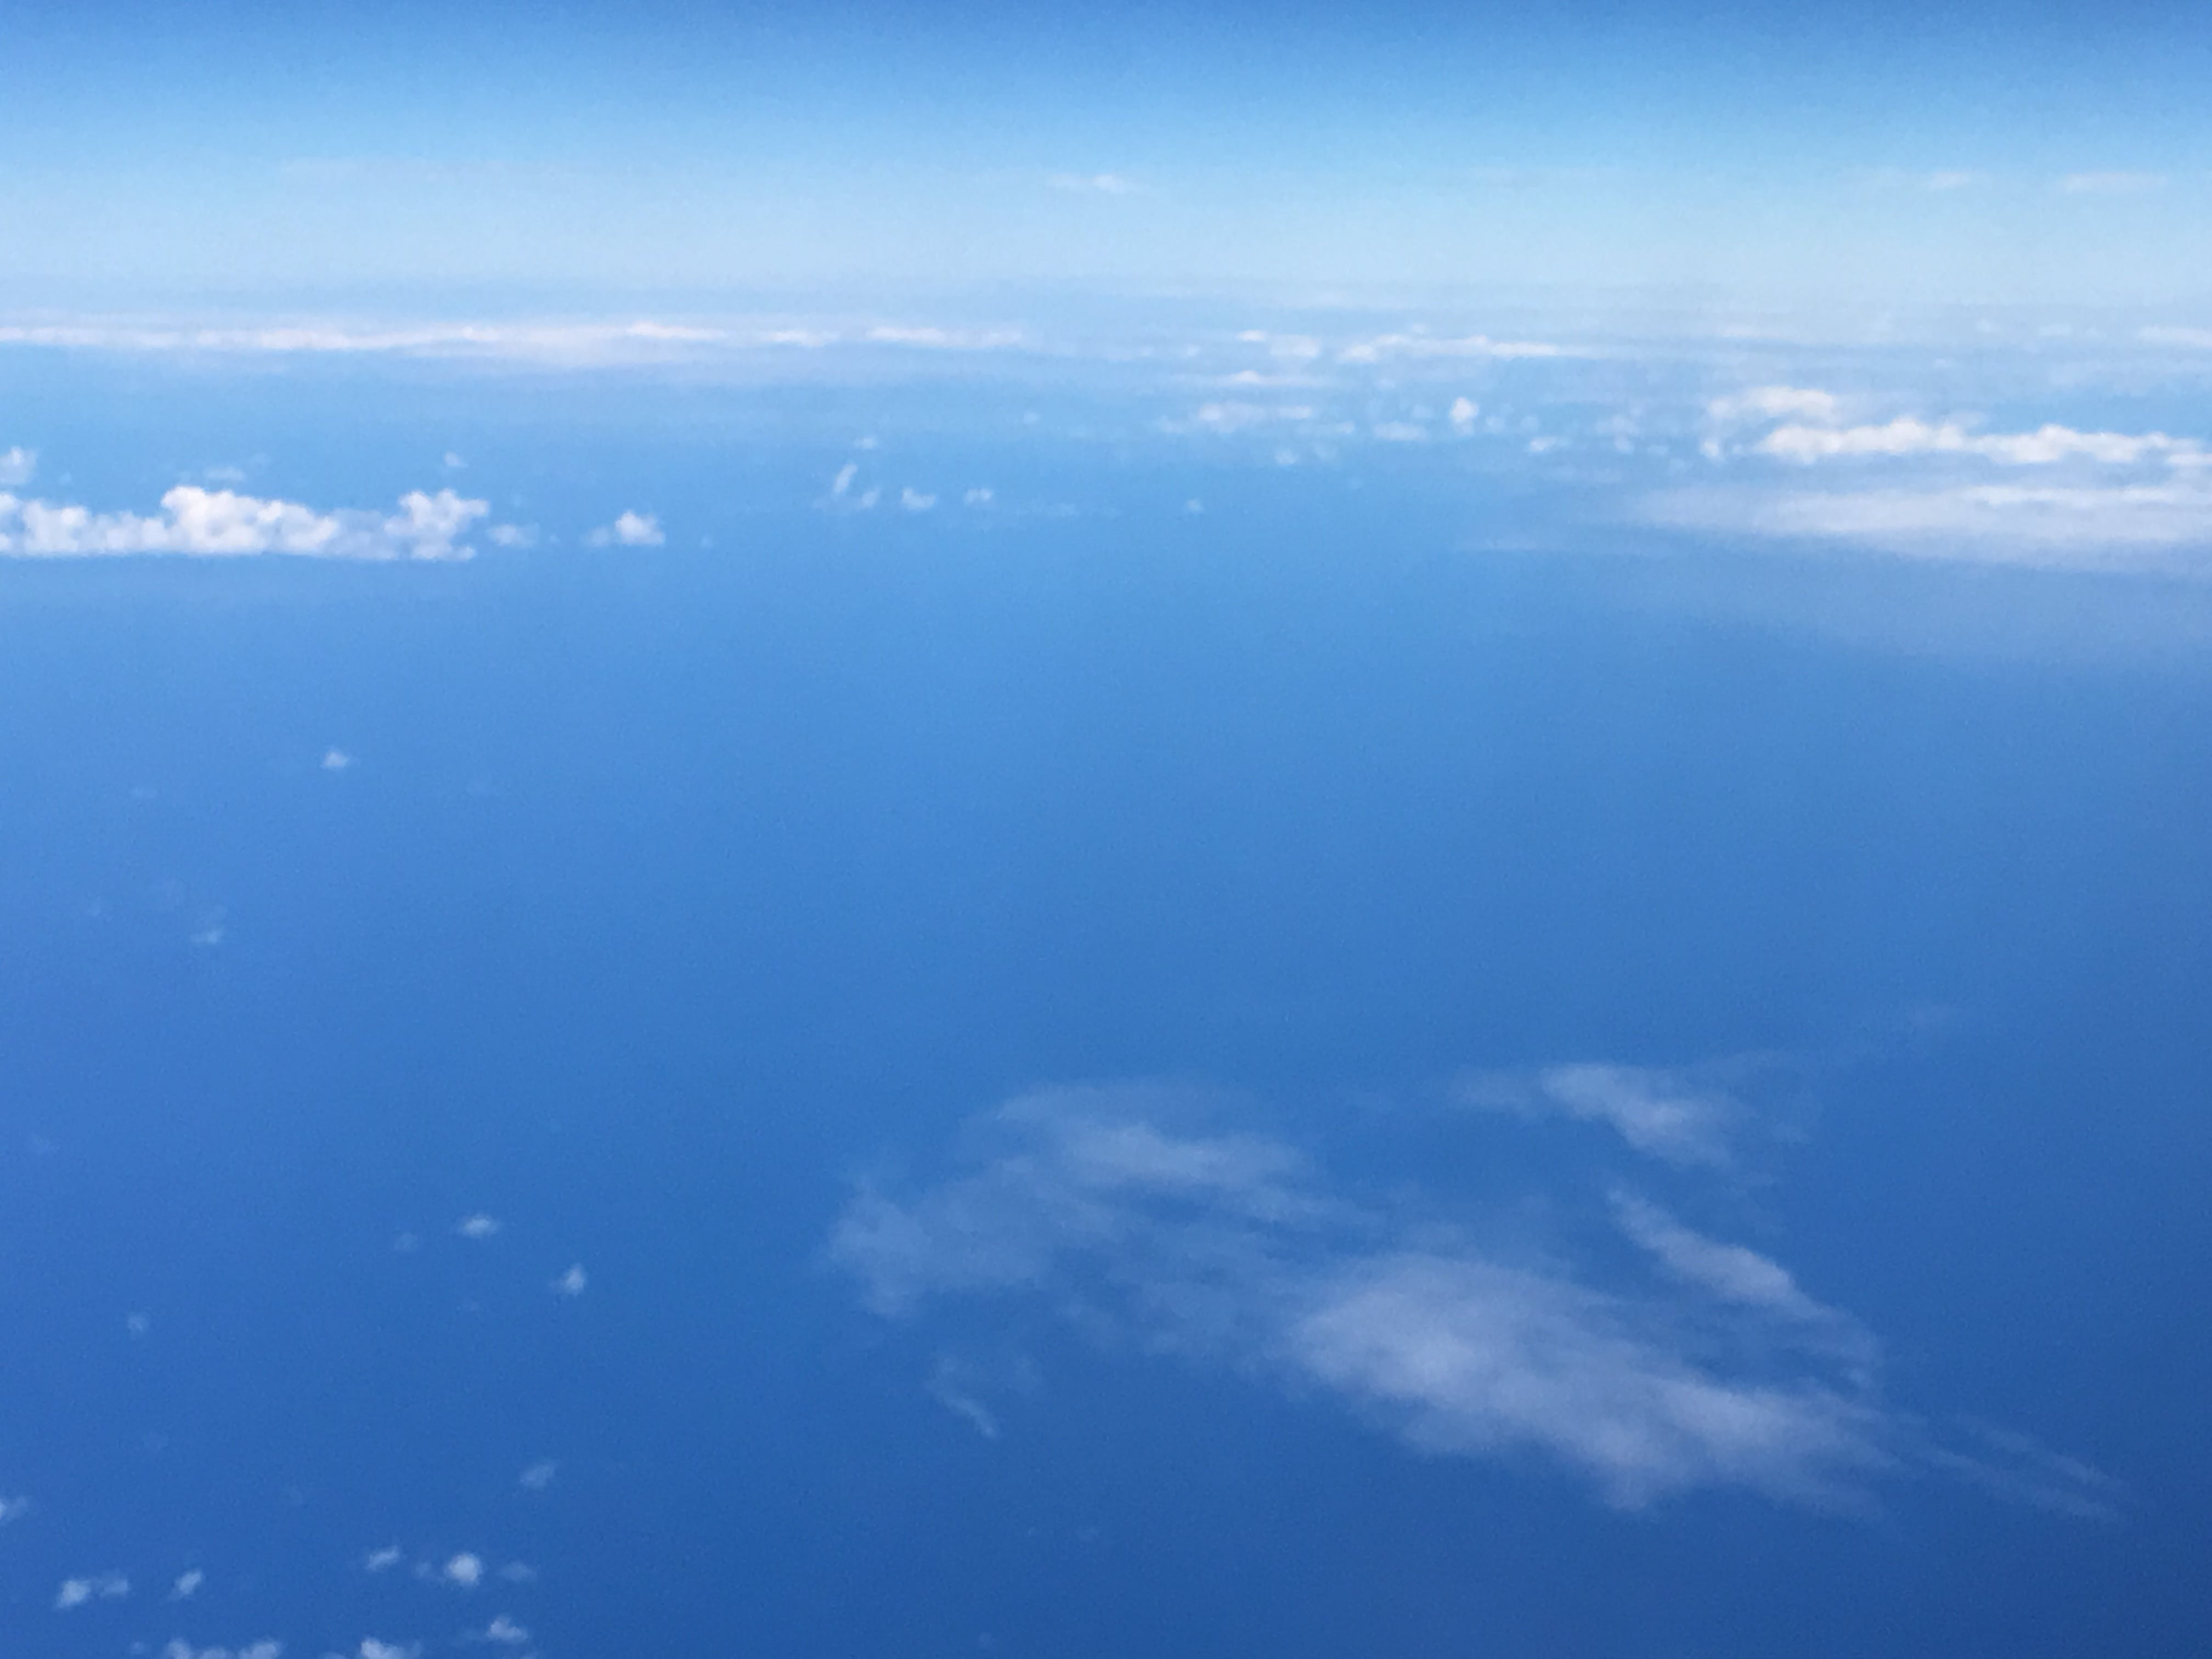 Free stock photo of airplane, blue sky, clouds, pacific ocean